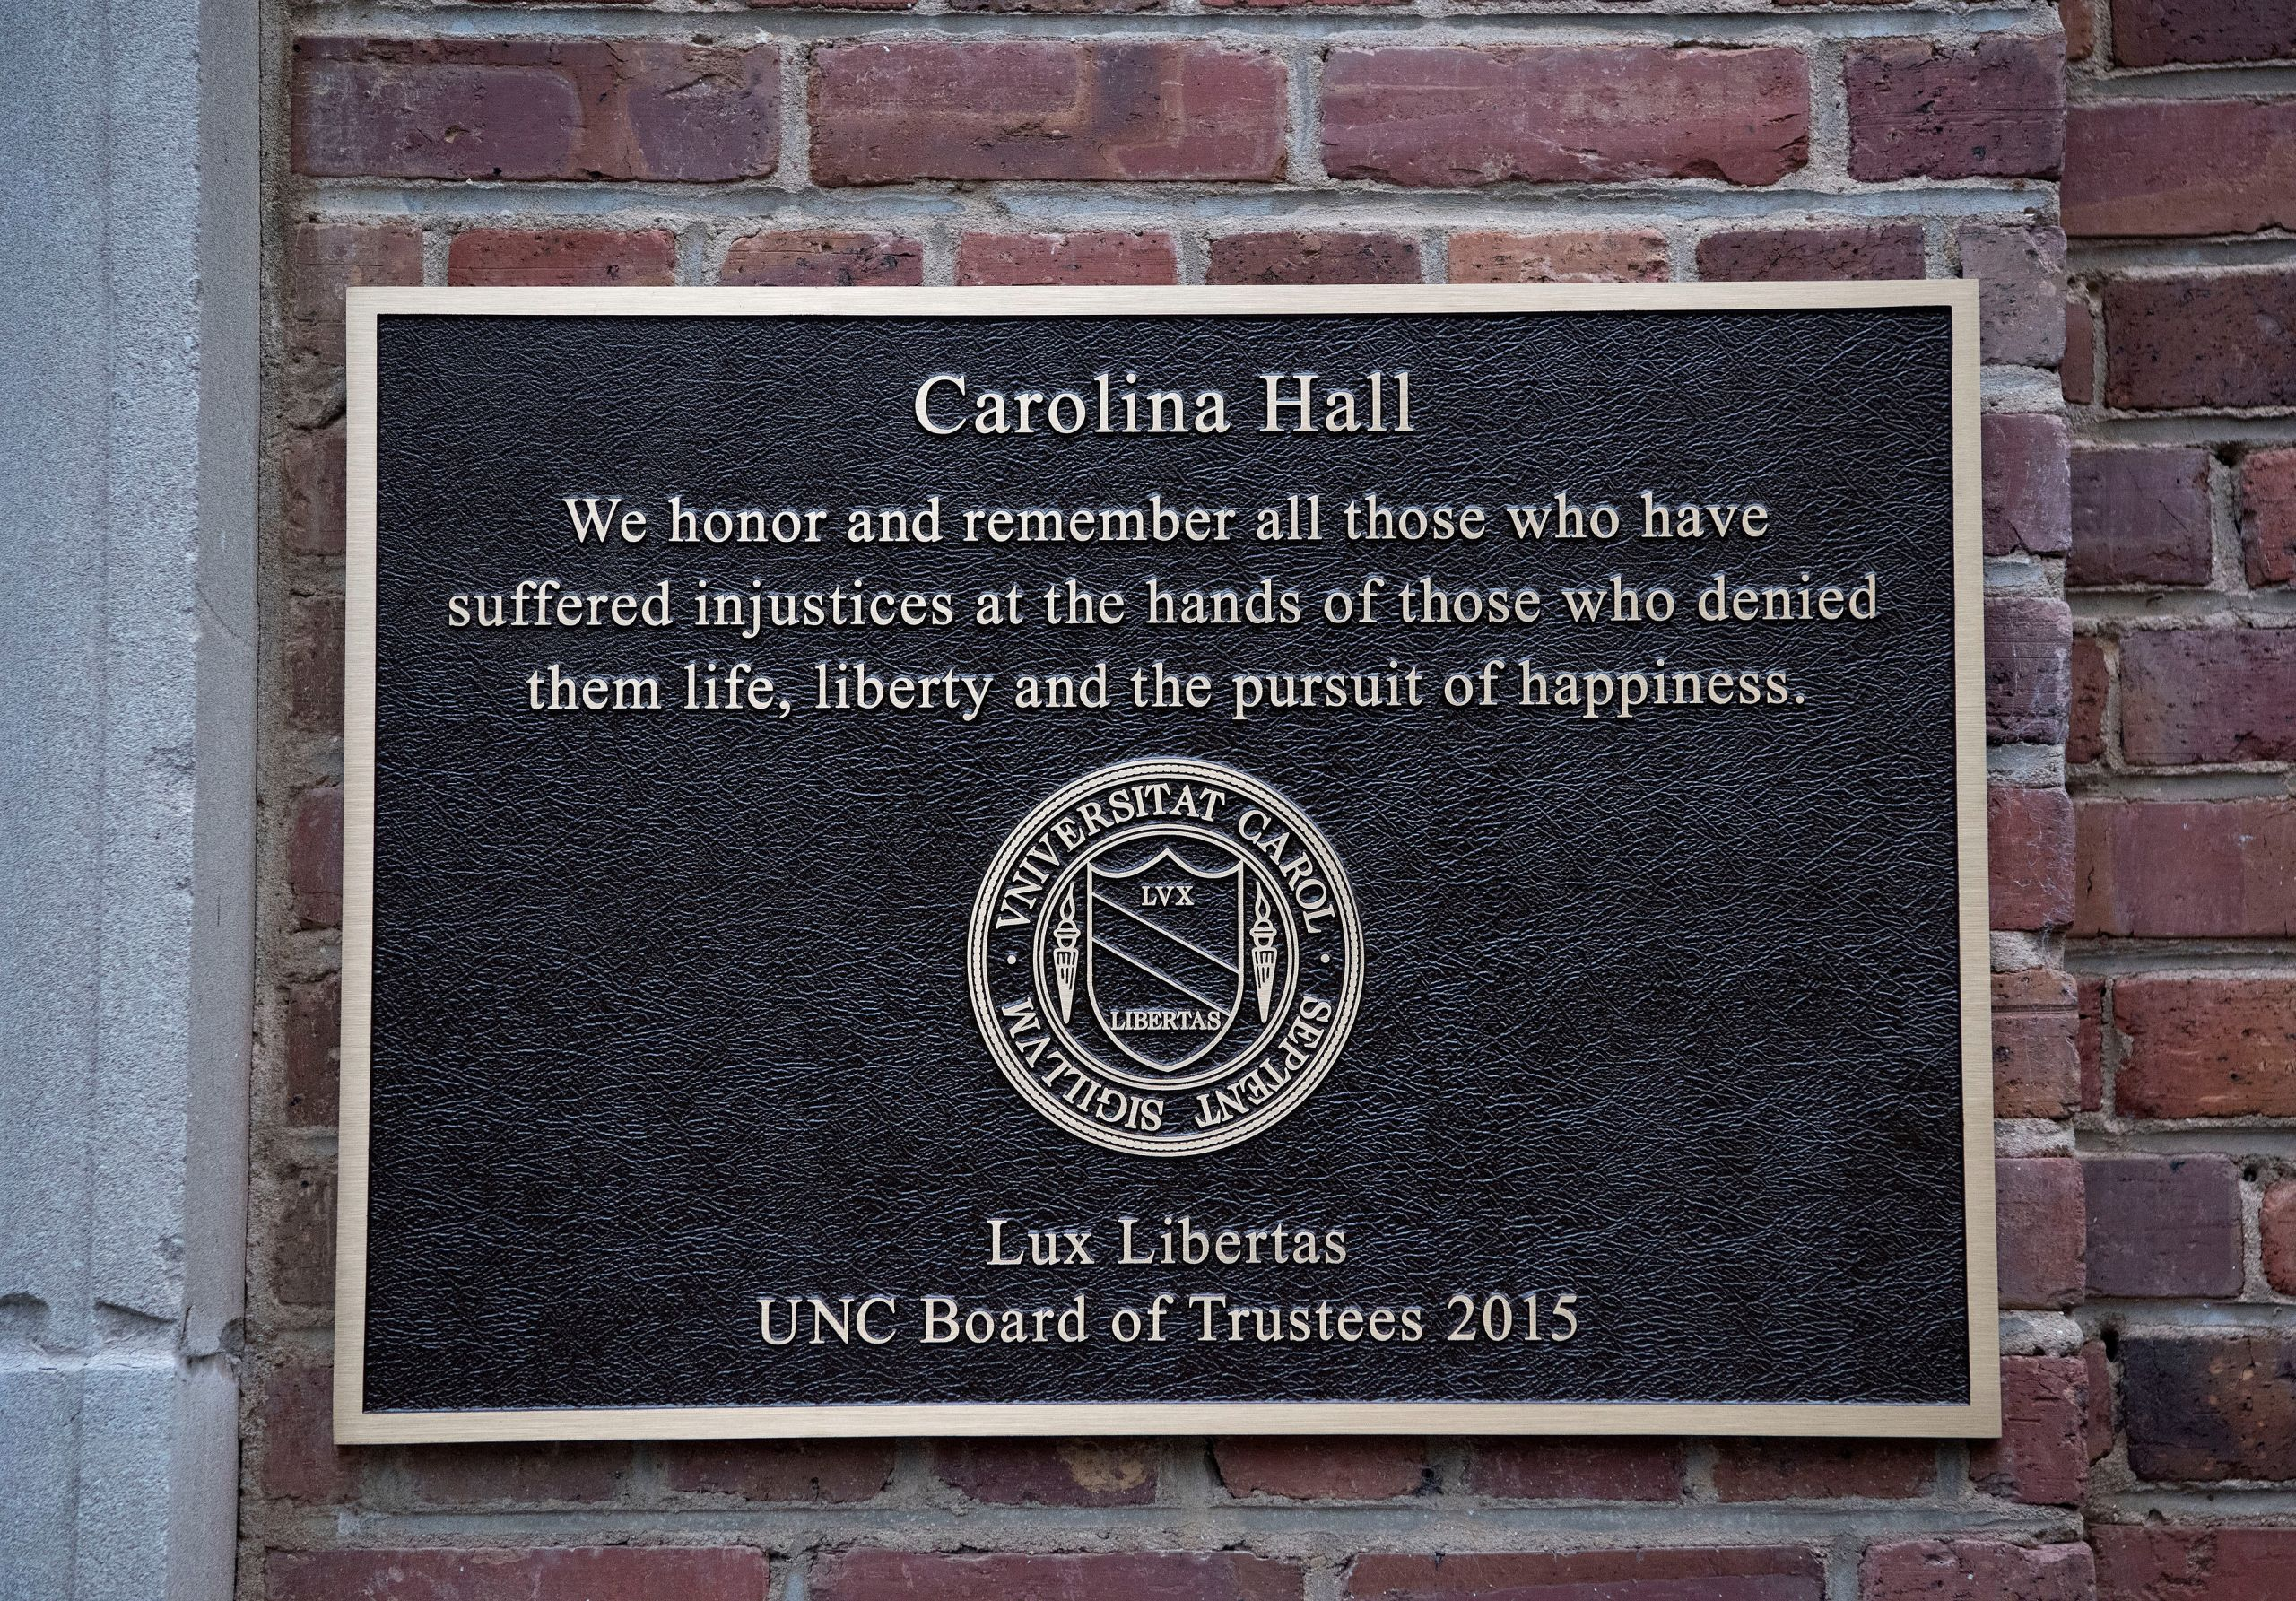 (UNC photo by Jon Gardiner '98)